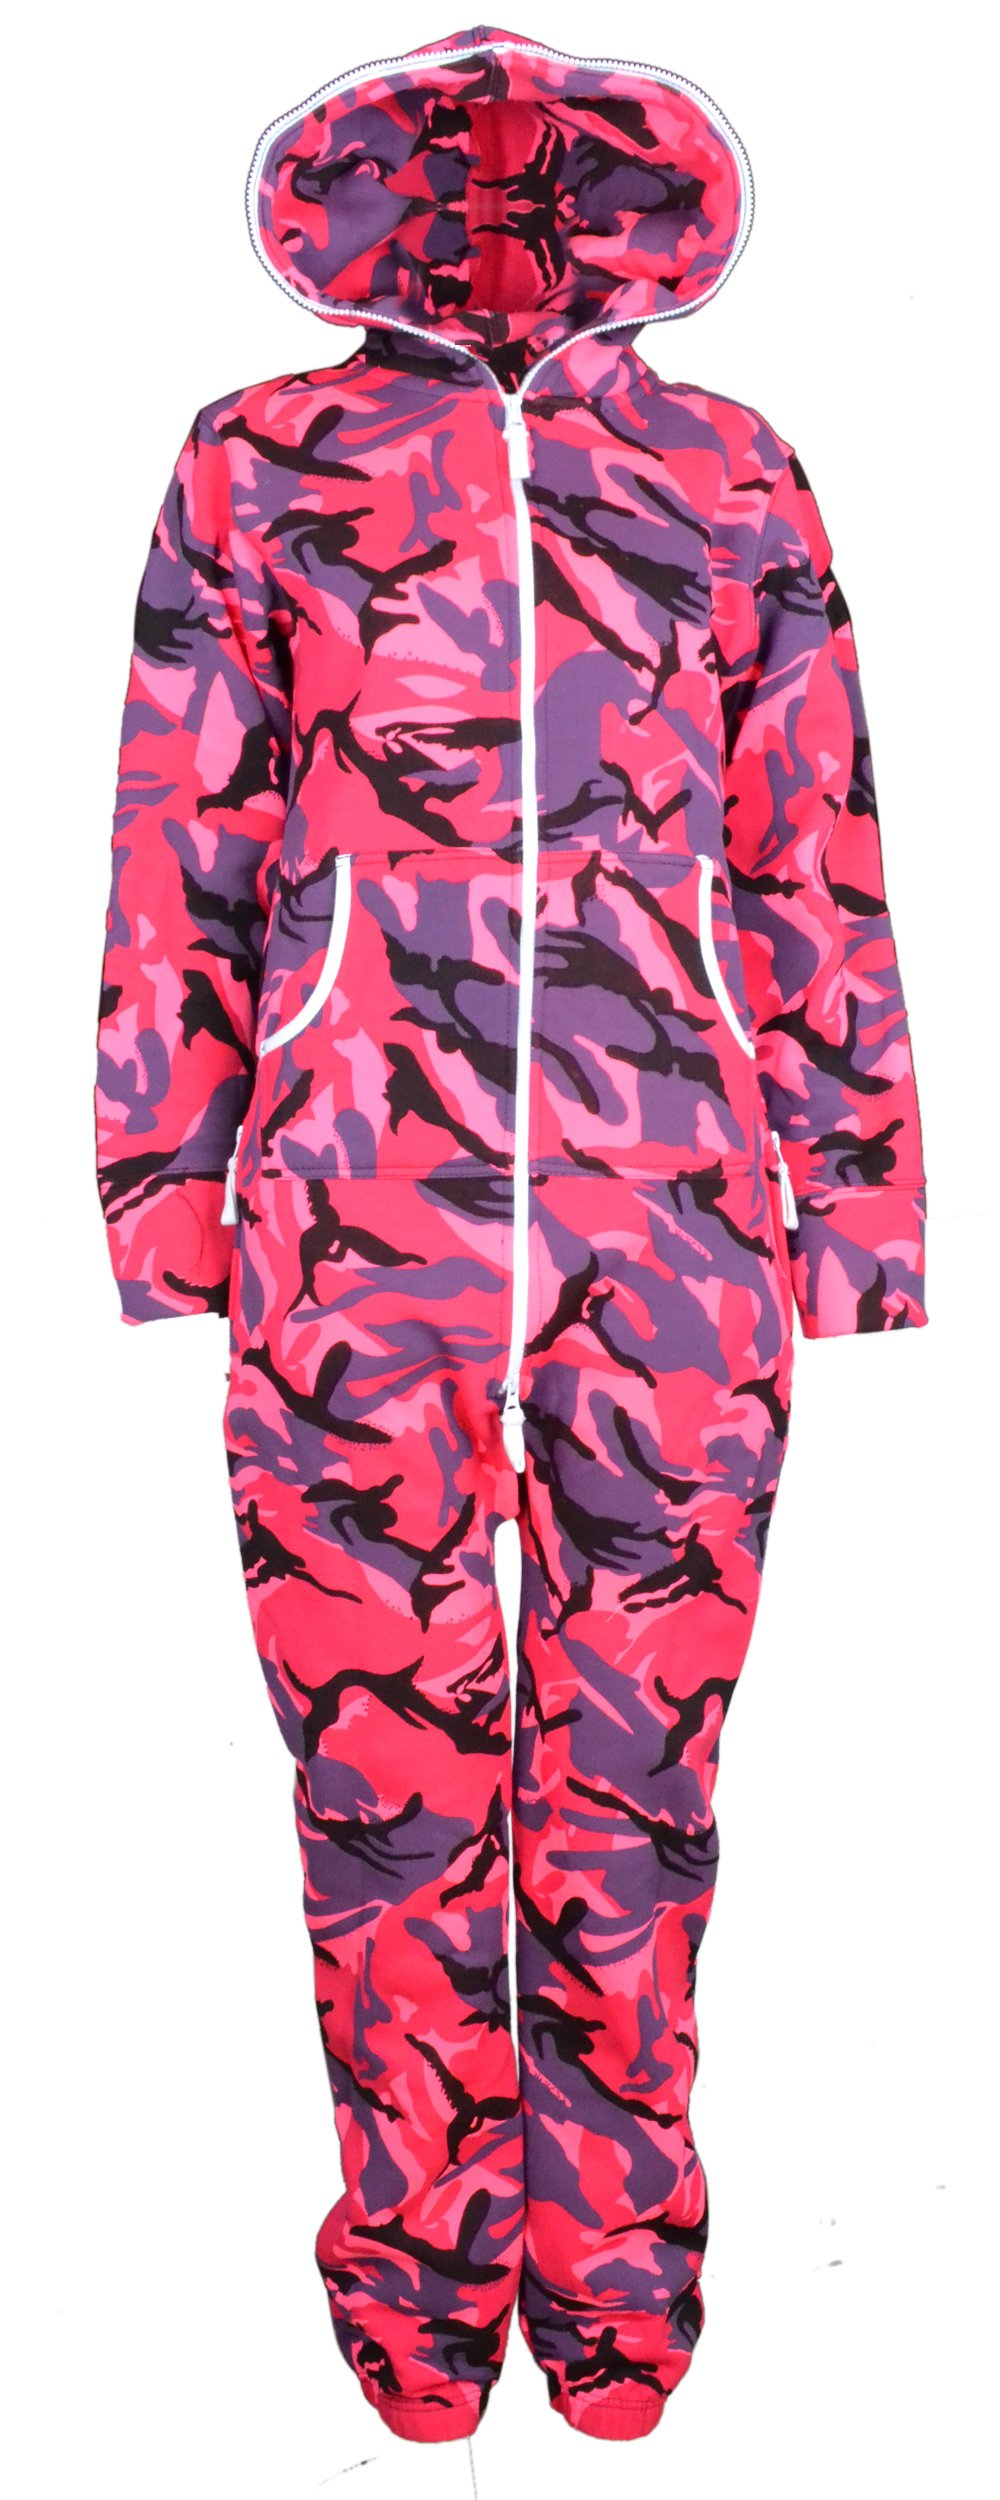 New Unisex Womens Fleece Pink Camoflauge Print Onesie Jumpsuit